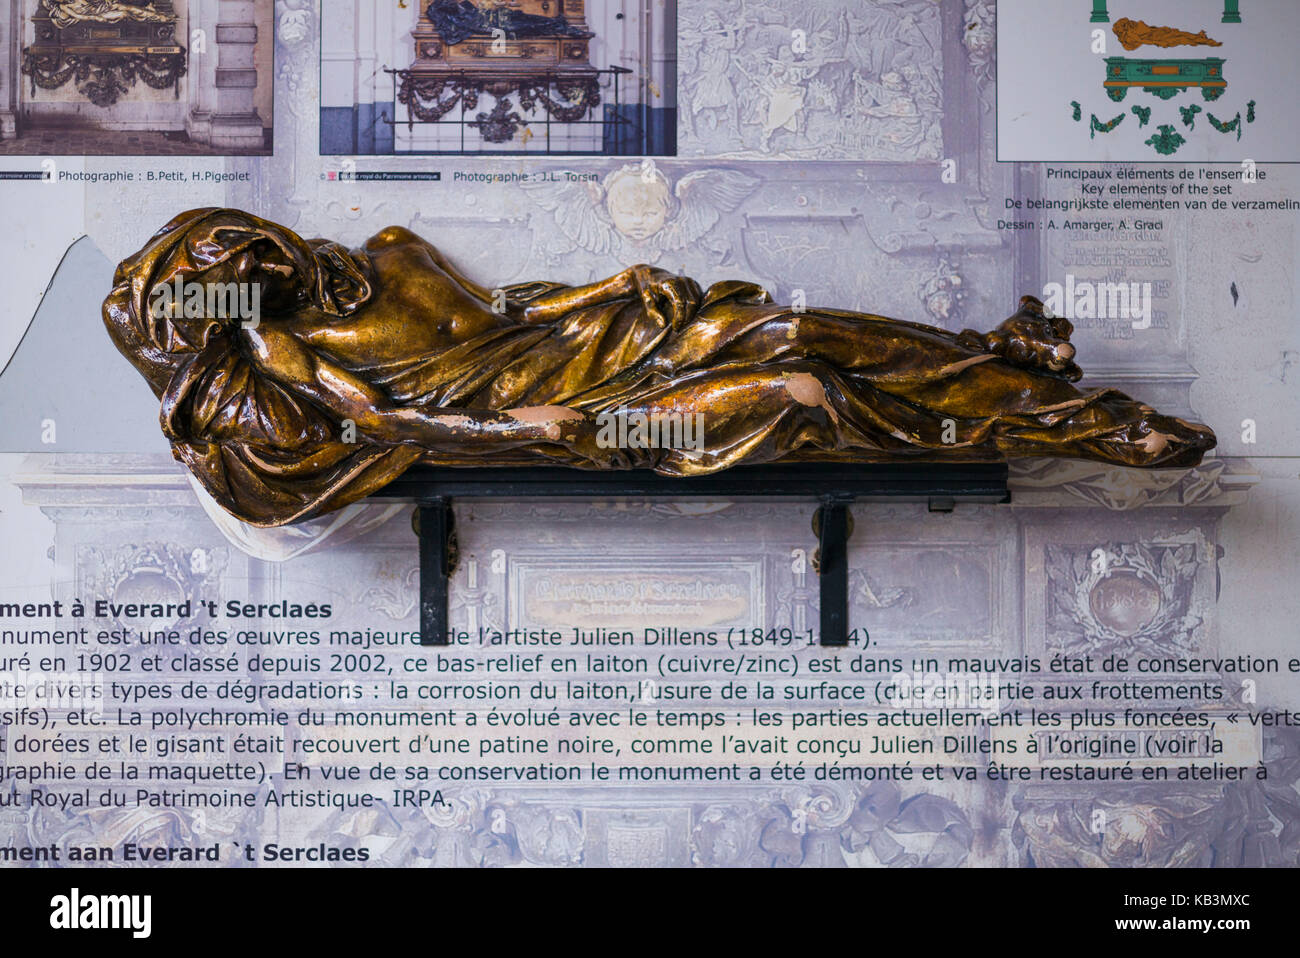 Belgium, Brussels, Grand Place, bronze statue of Everard 't Serclaes, city hero died in 1388, rubbing the statue - Stock Image